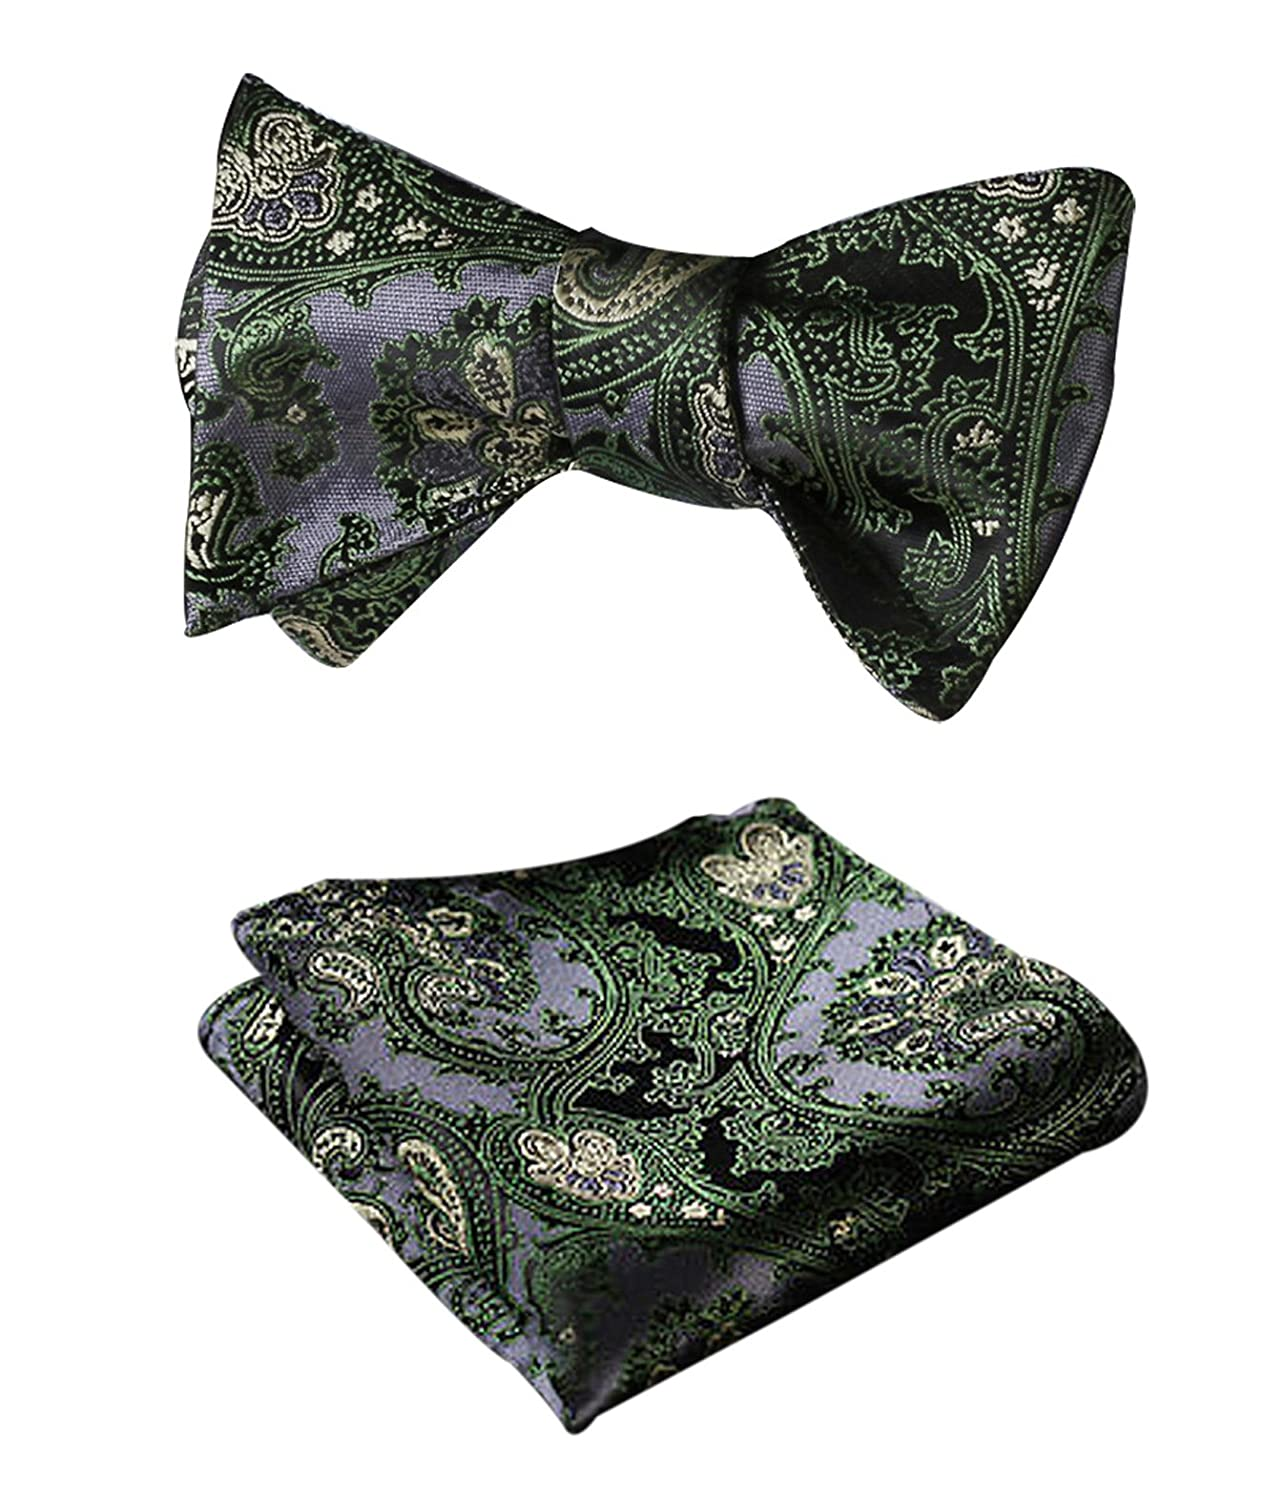 HISDERN Men's Floral Paisley Jacquard Wedding Party Self Bow Tie Pocket Square Set BF3022GS-2